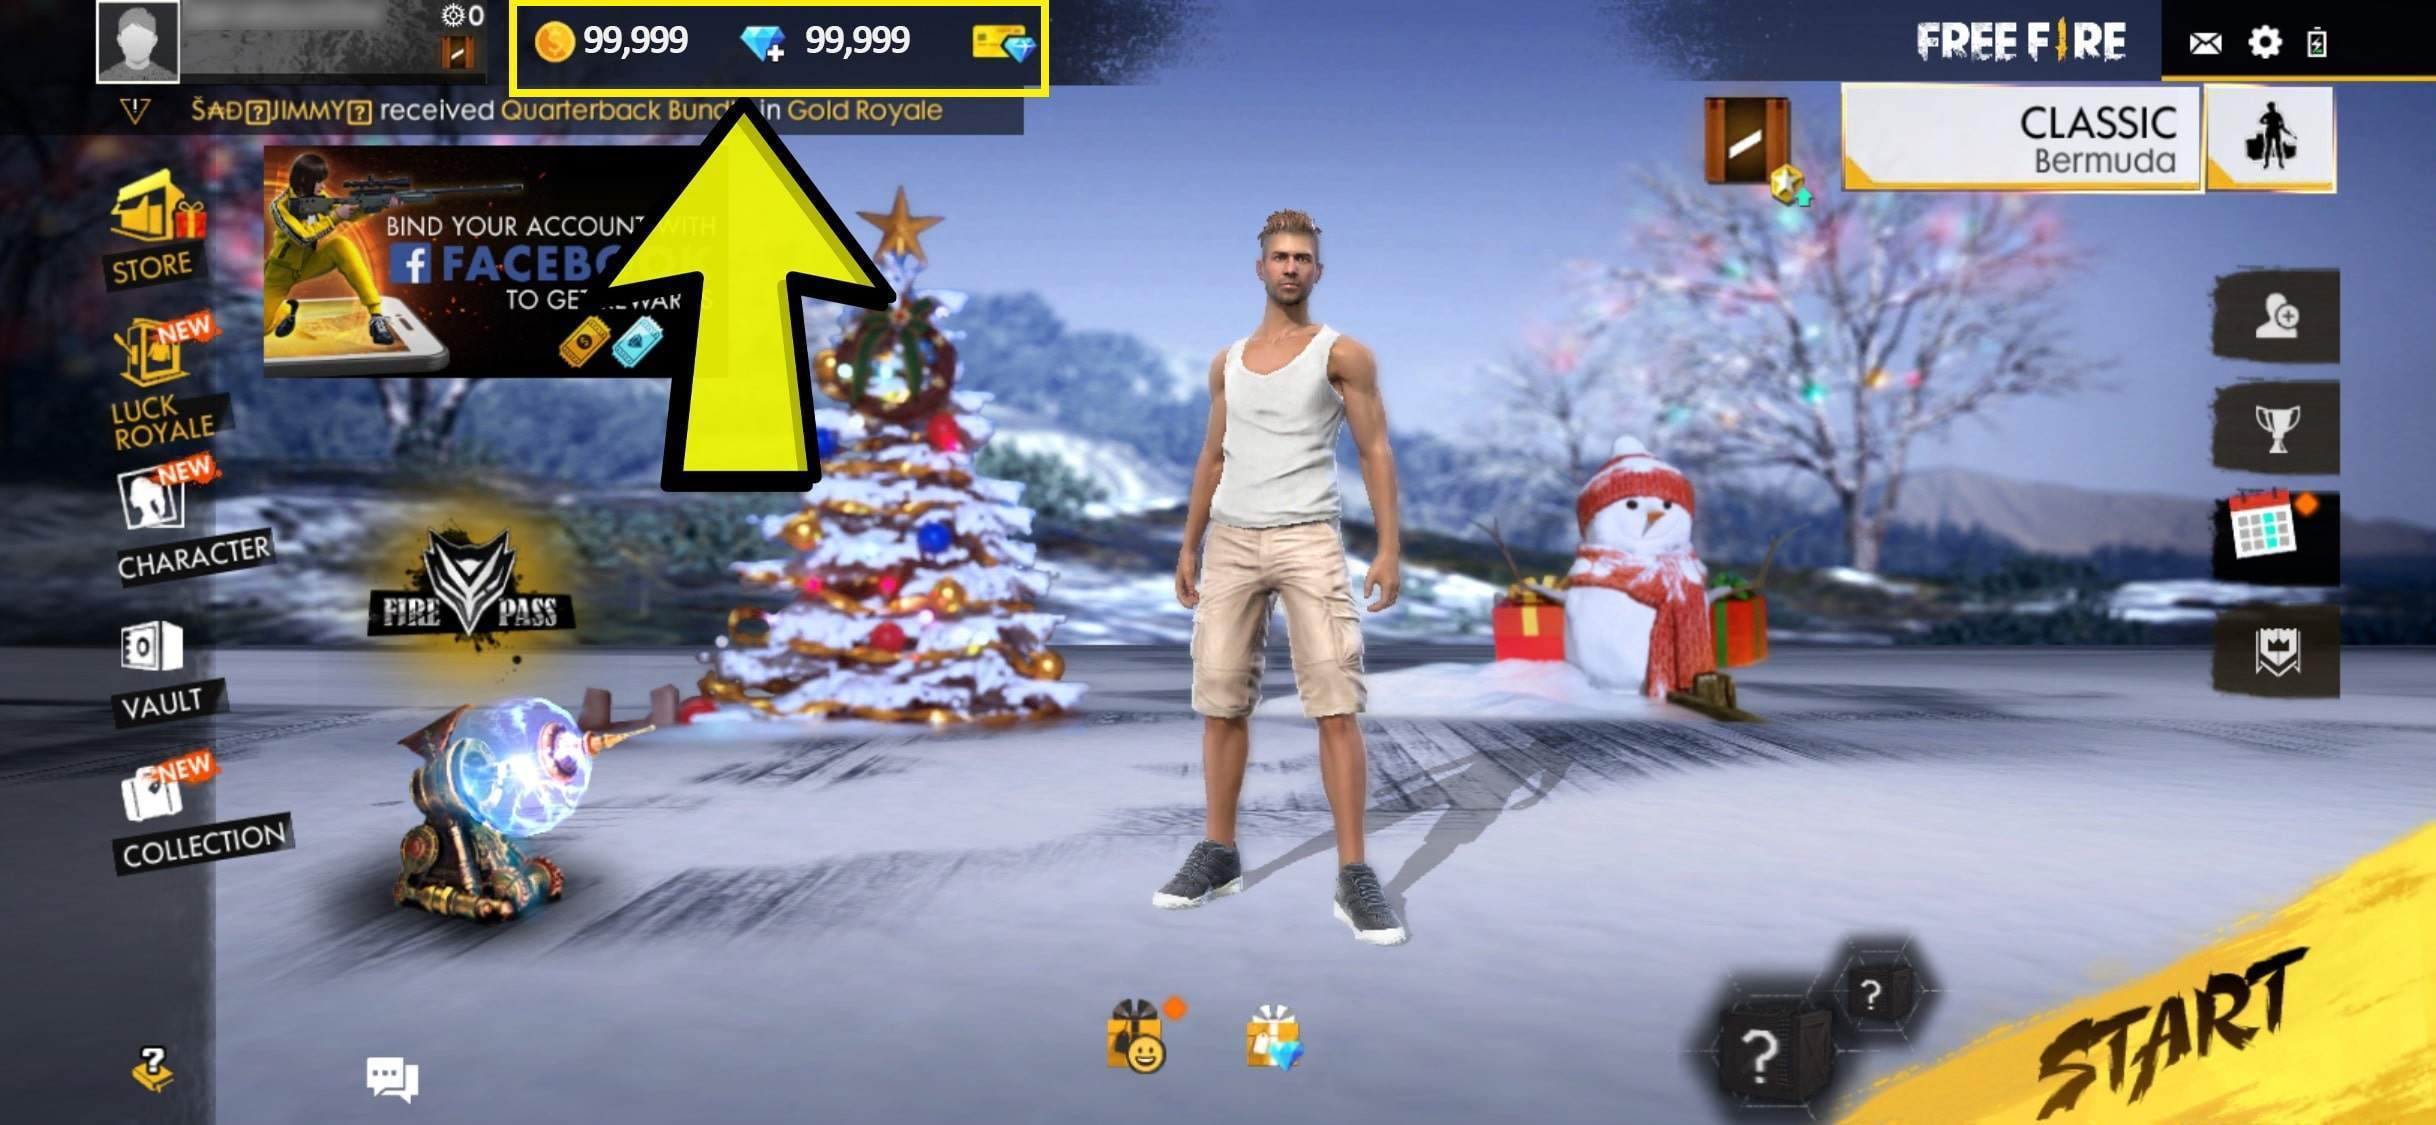 Get Freefire Unlimited Coins and Diamonds For Free! Working [2021]